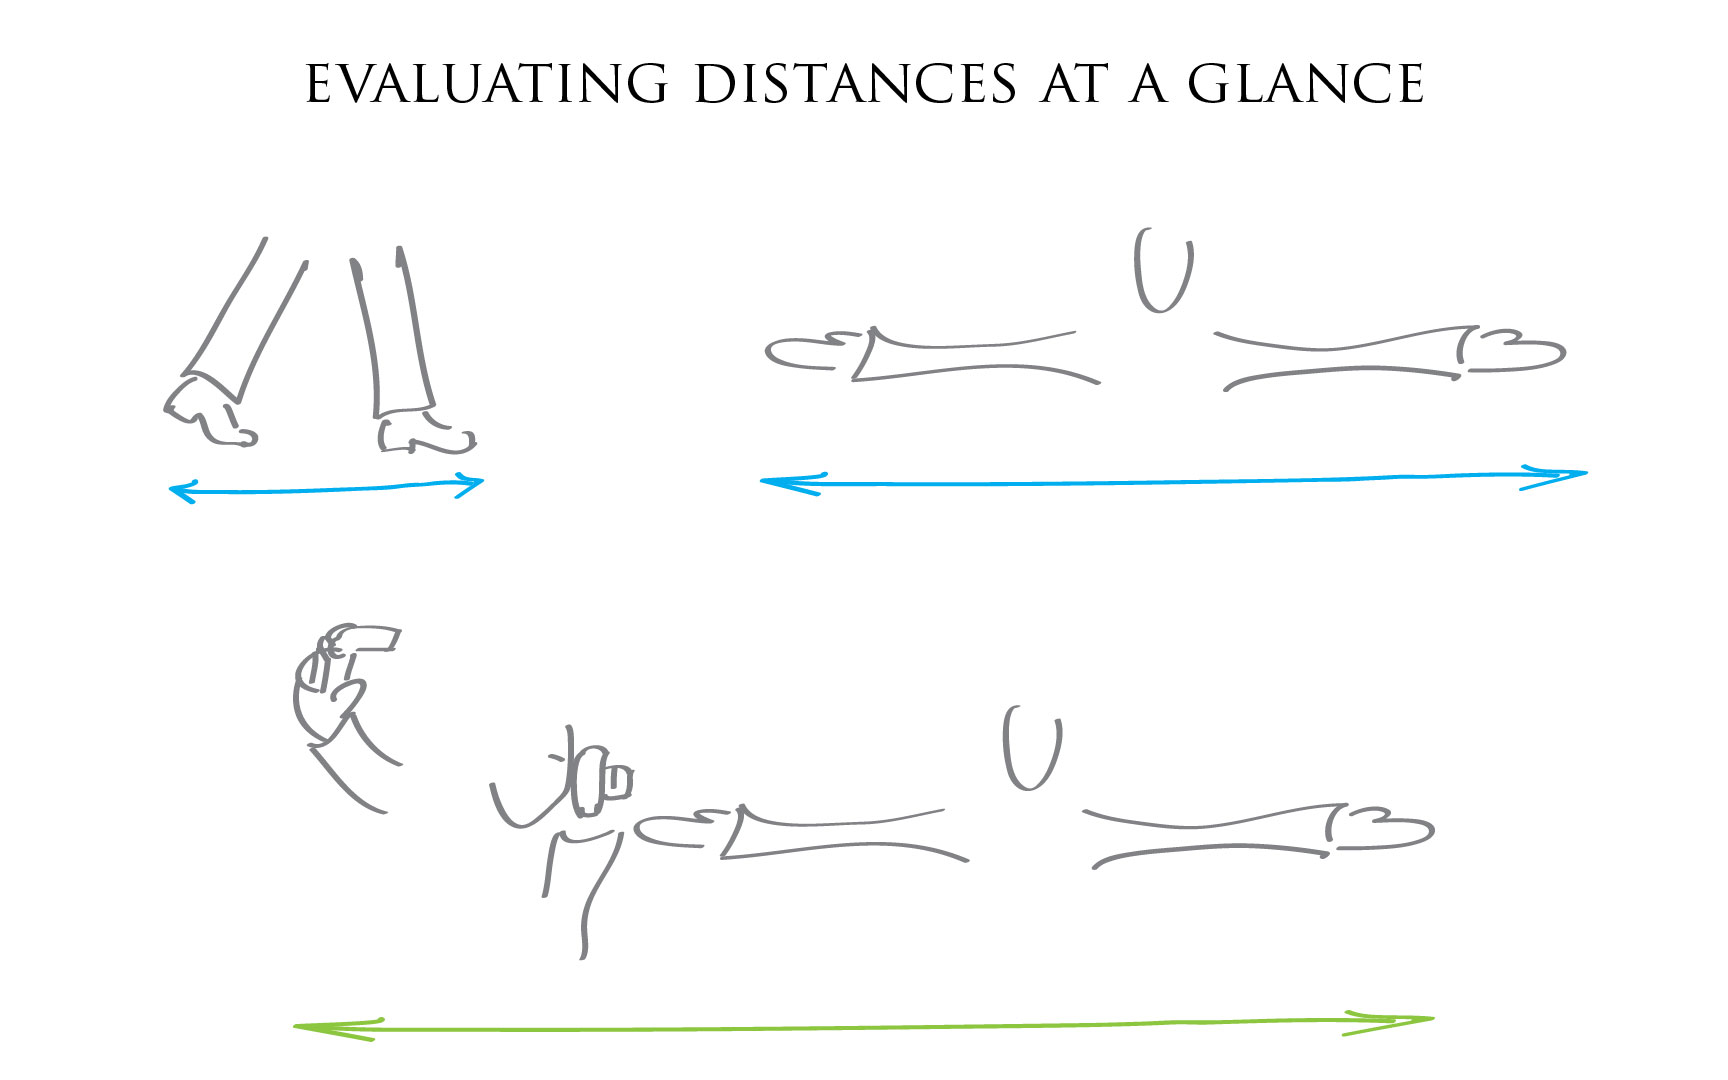 Illustration: Evaluating distances at a glance